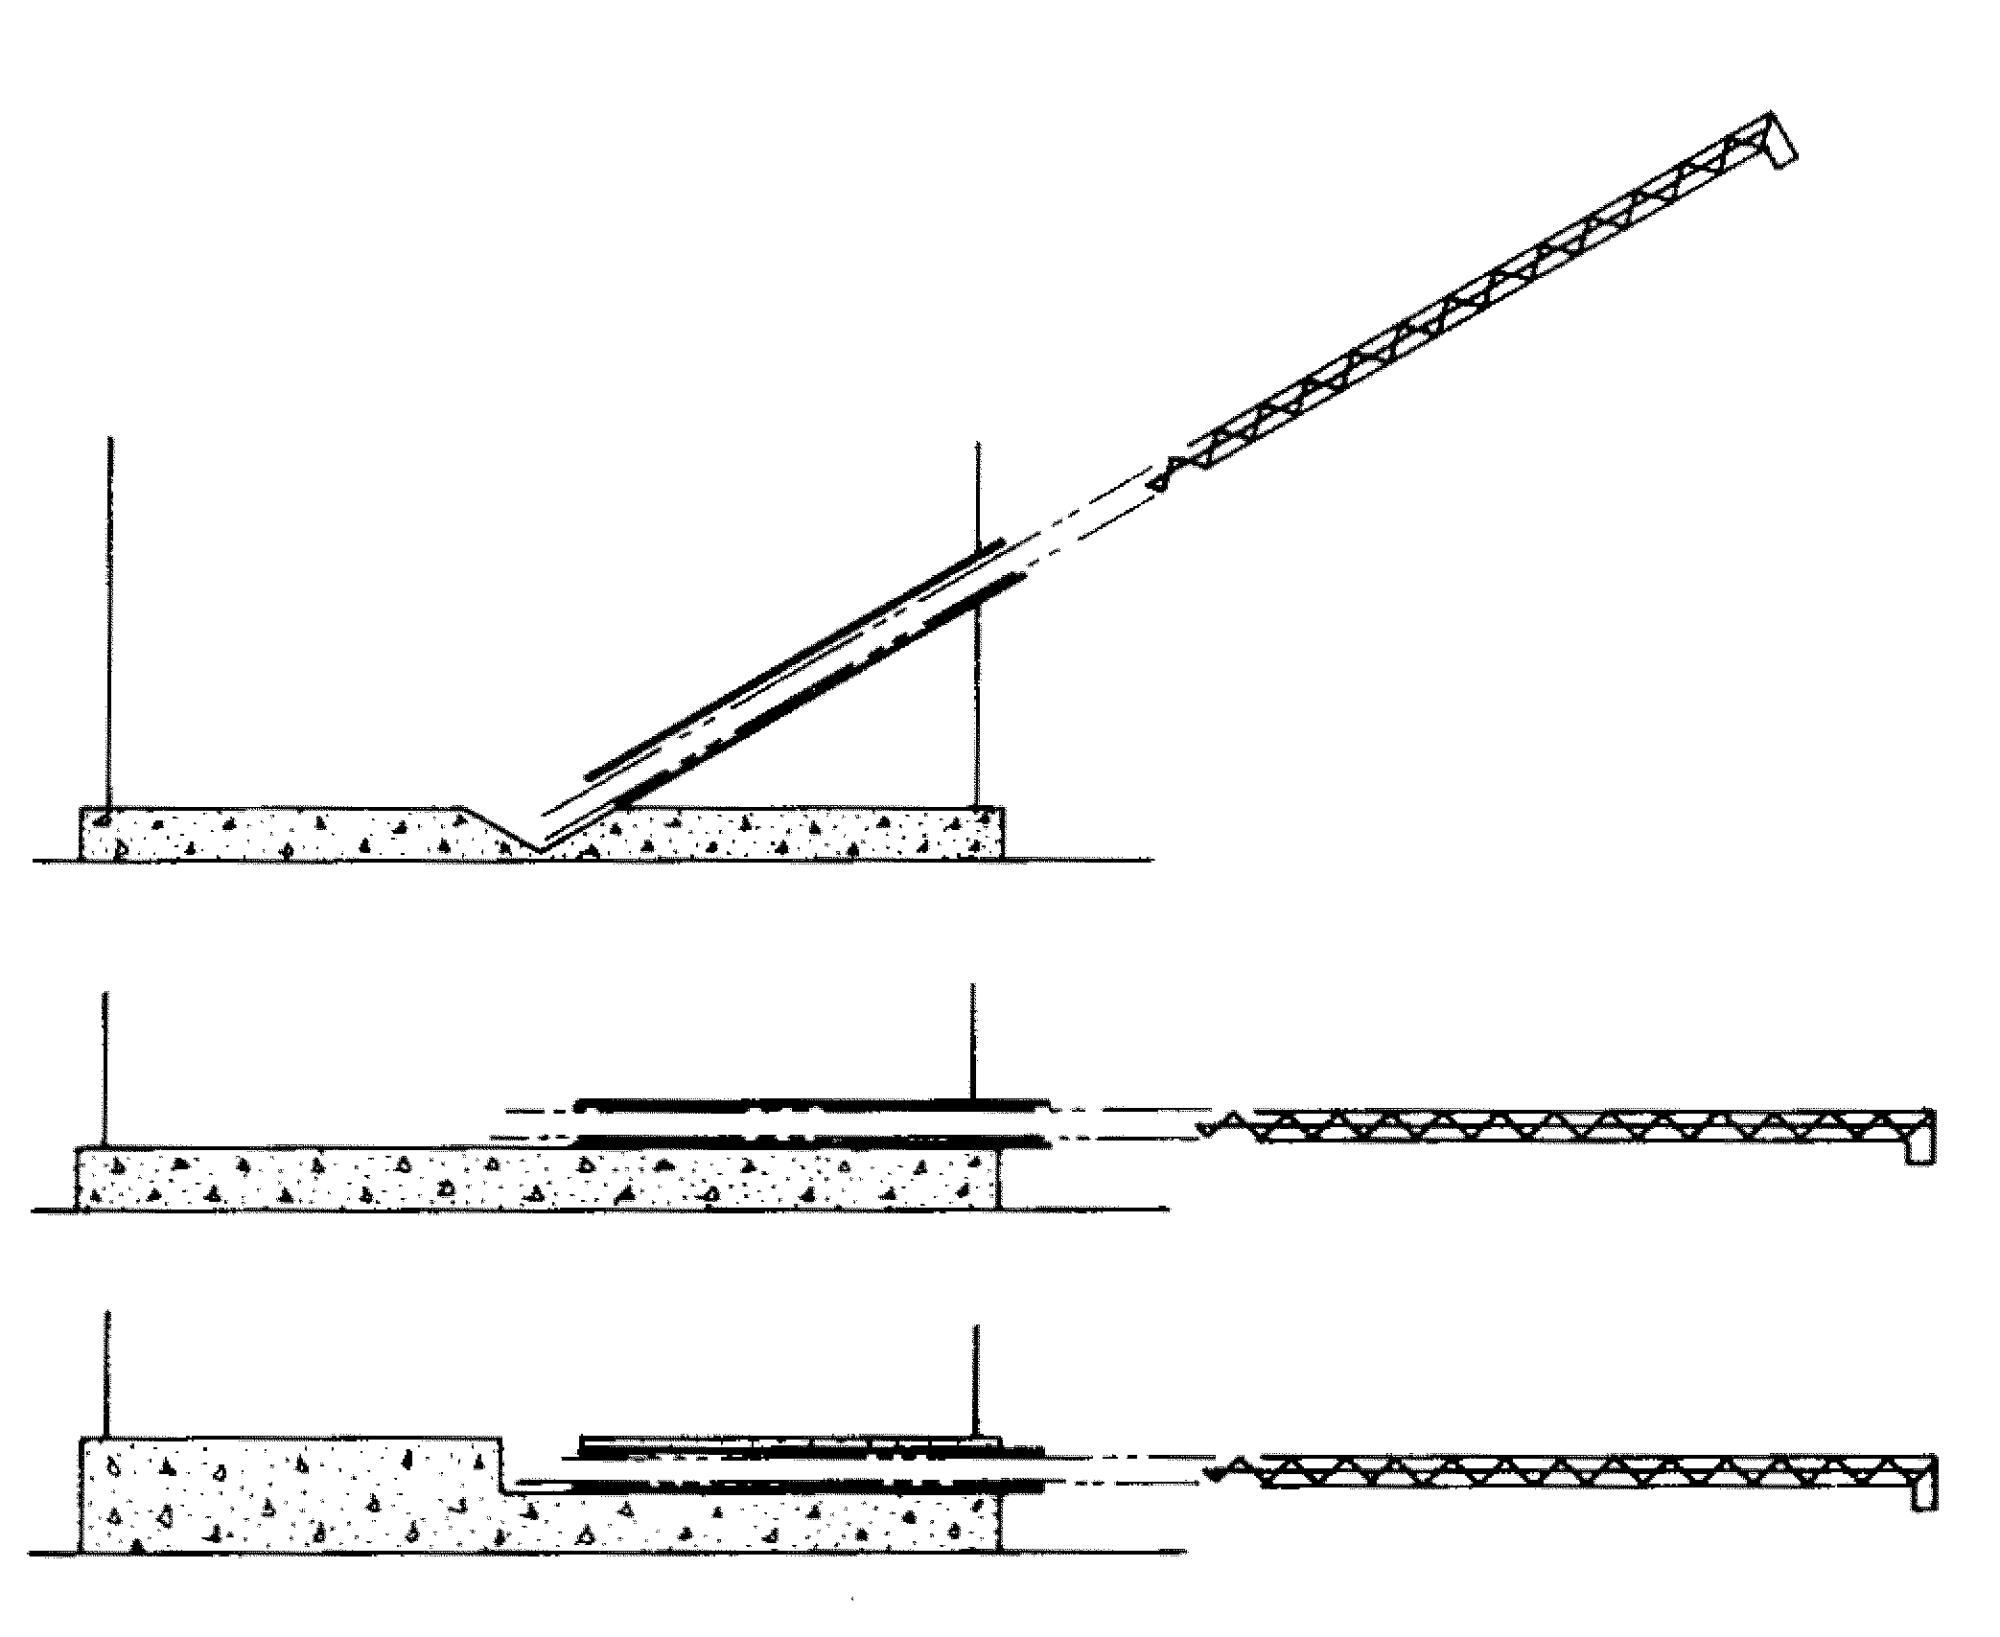 hight resolution of if a metal sleeve is placed in the bin foundation or sidewall an unloading auger can be inserted when needed and one auger can serve several bins